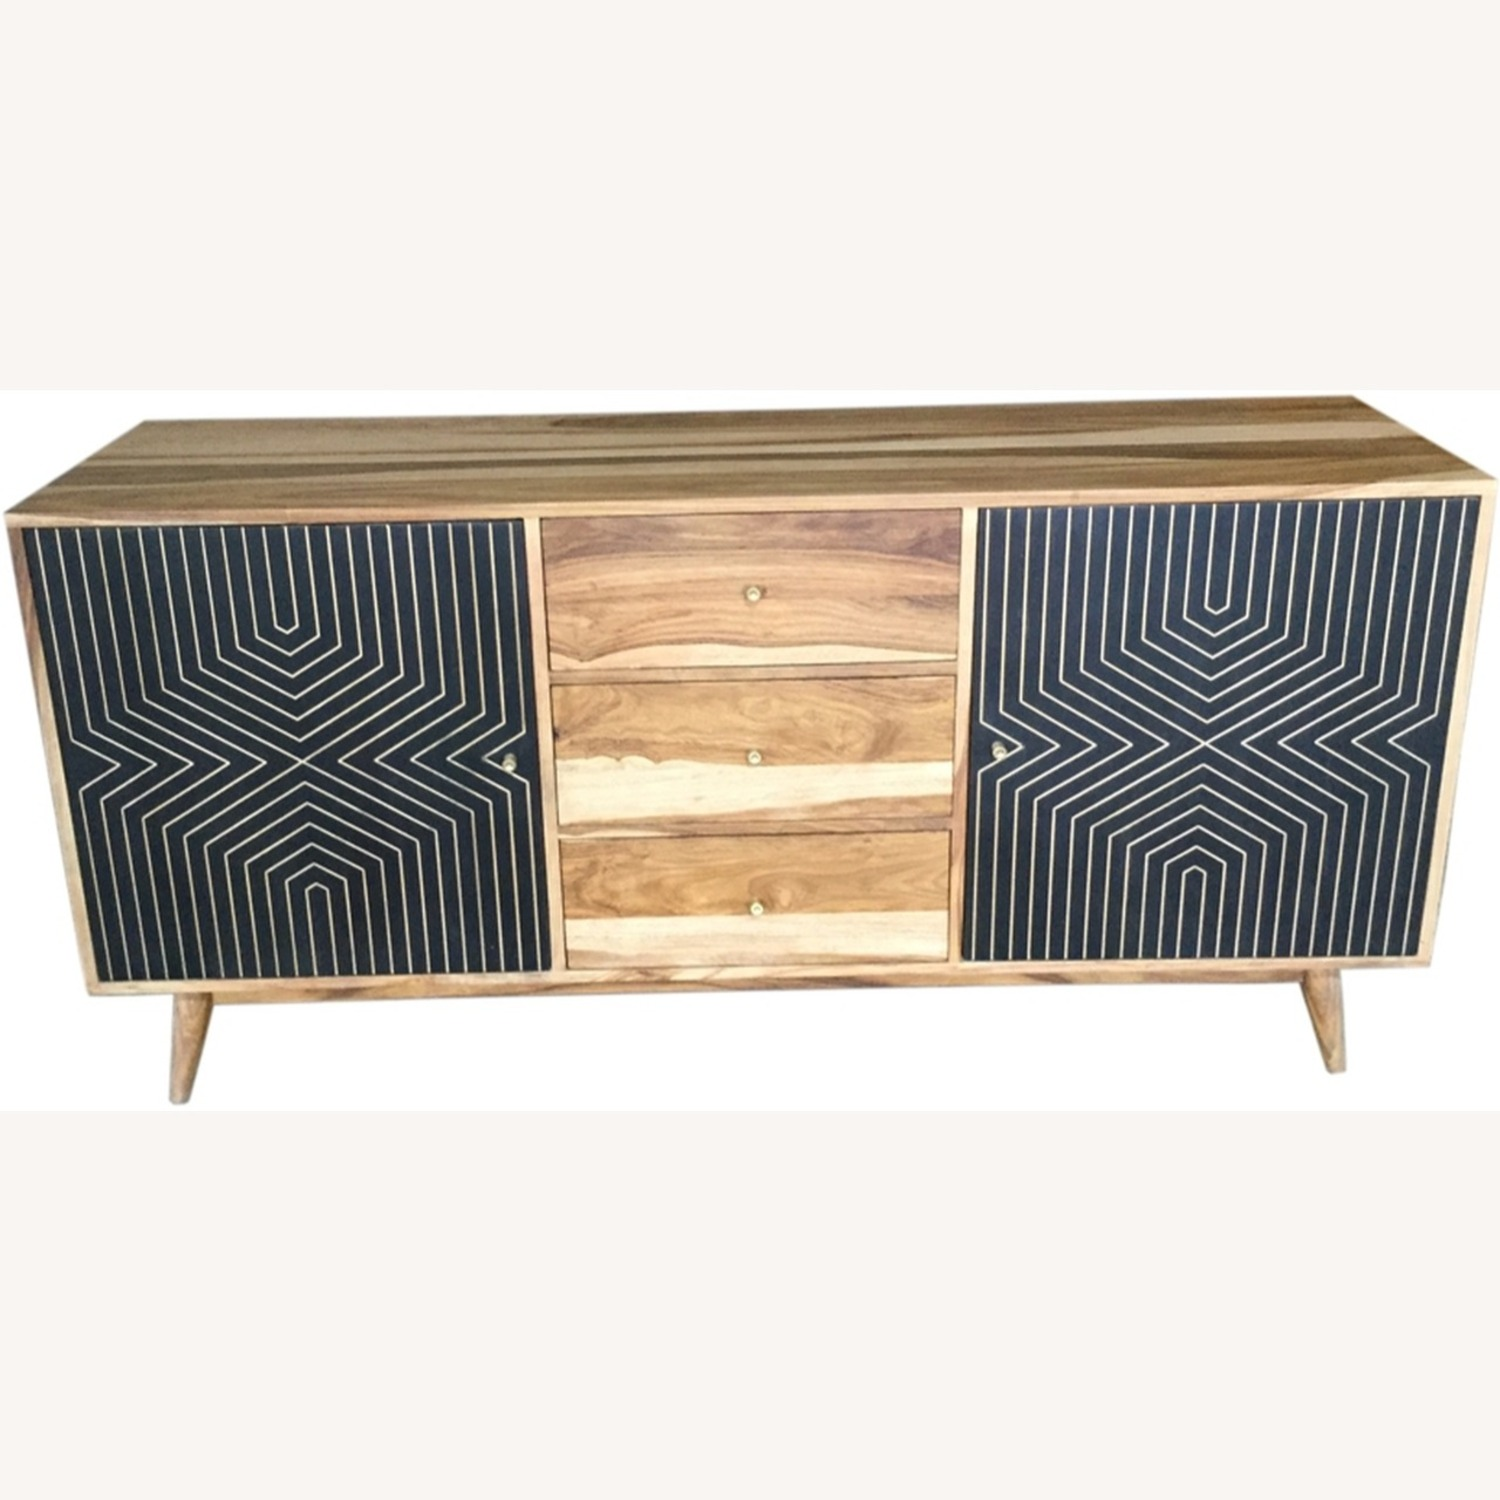 Server In Natural Finish W/ Art Deco Inspired - image-2